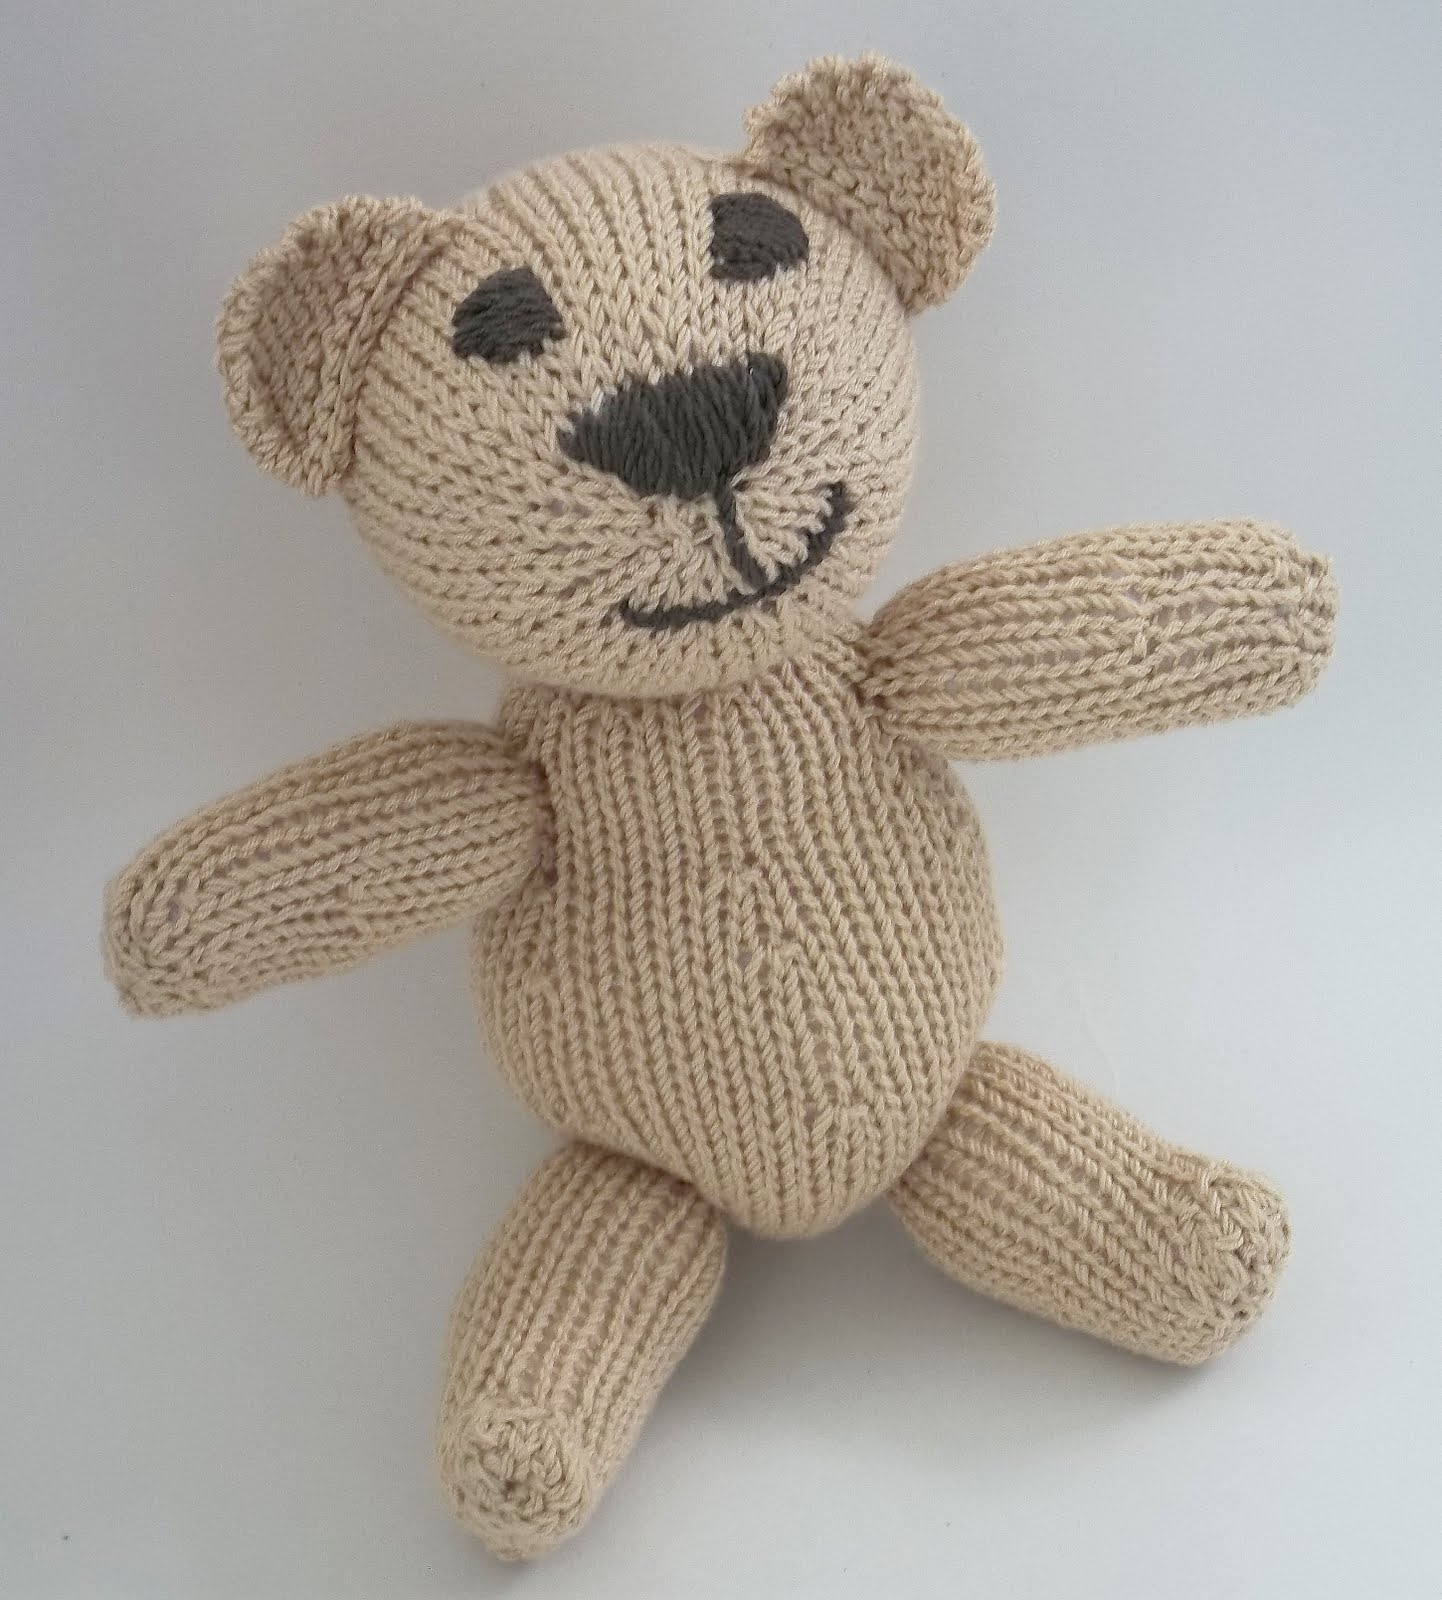 Knitting Pattern For All In One Teddy Bear : Teddy Bear. Hand Knitting Pattern